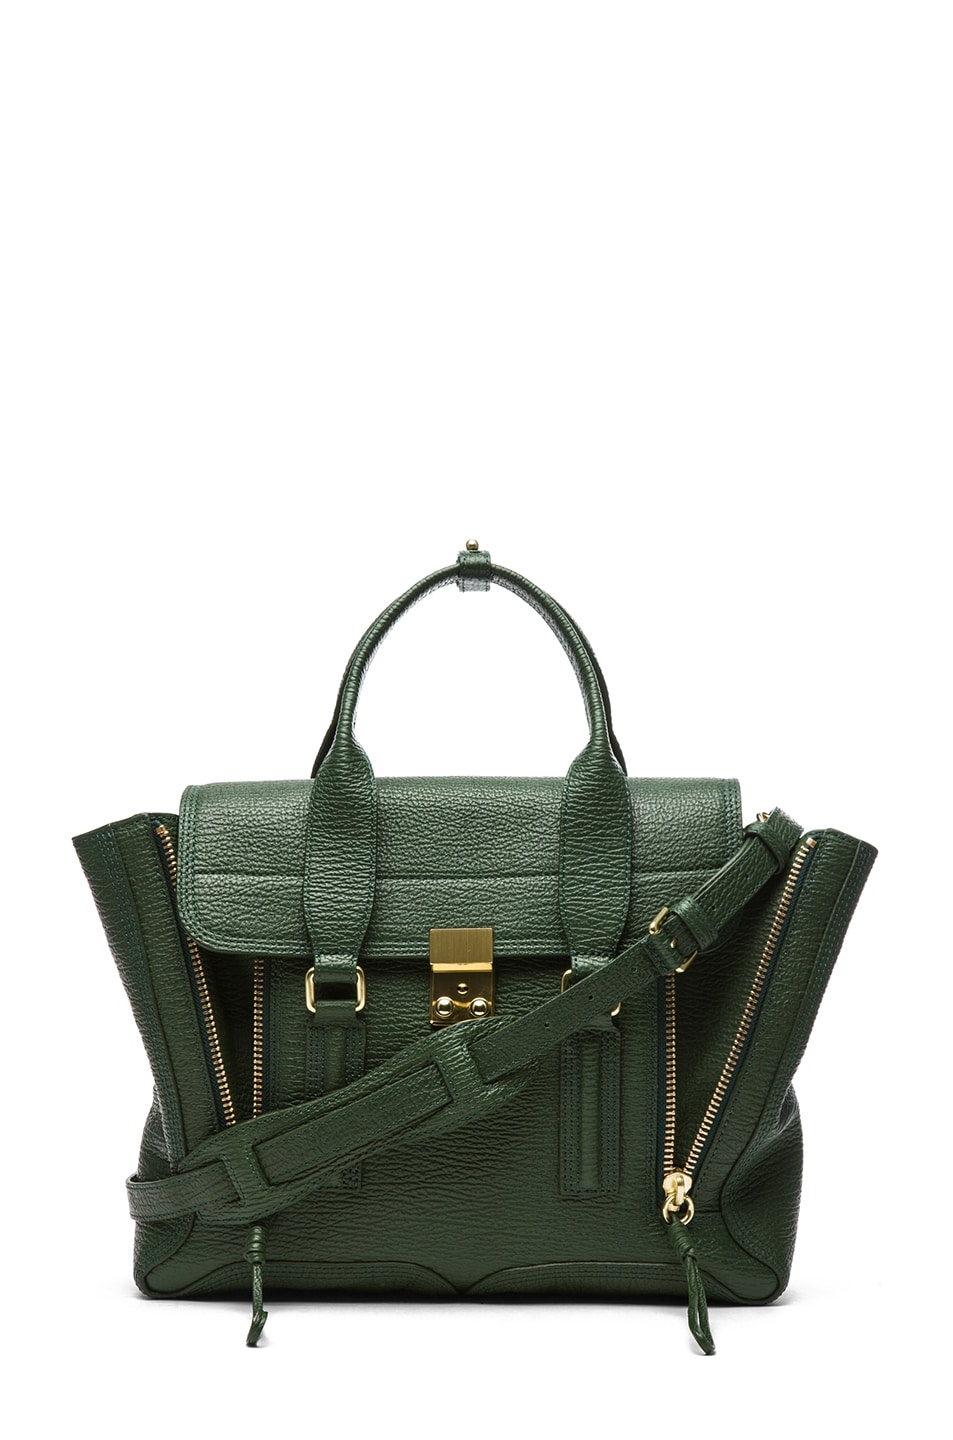 Image 1 of 3.1 phillip lim Medium Pashli Trapeze in Jade